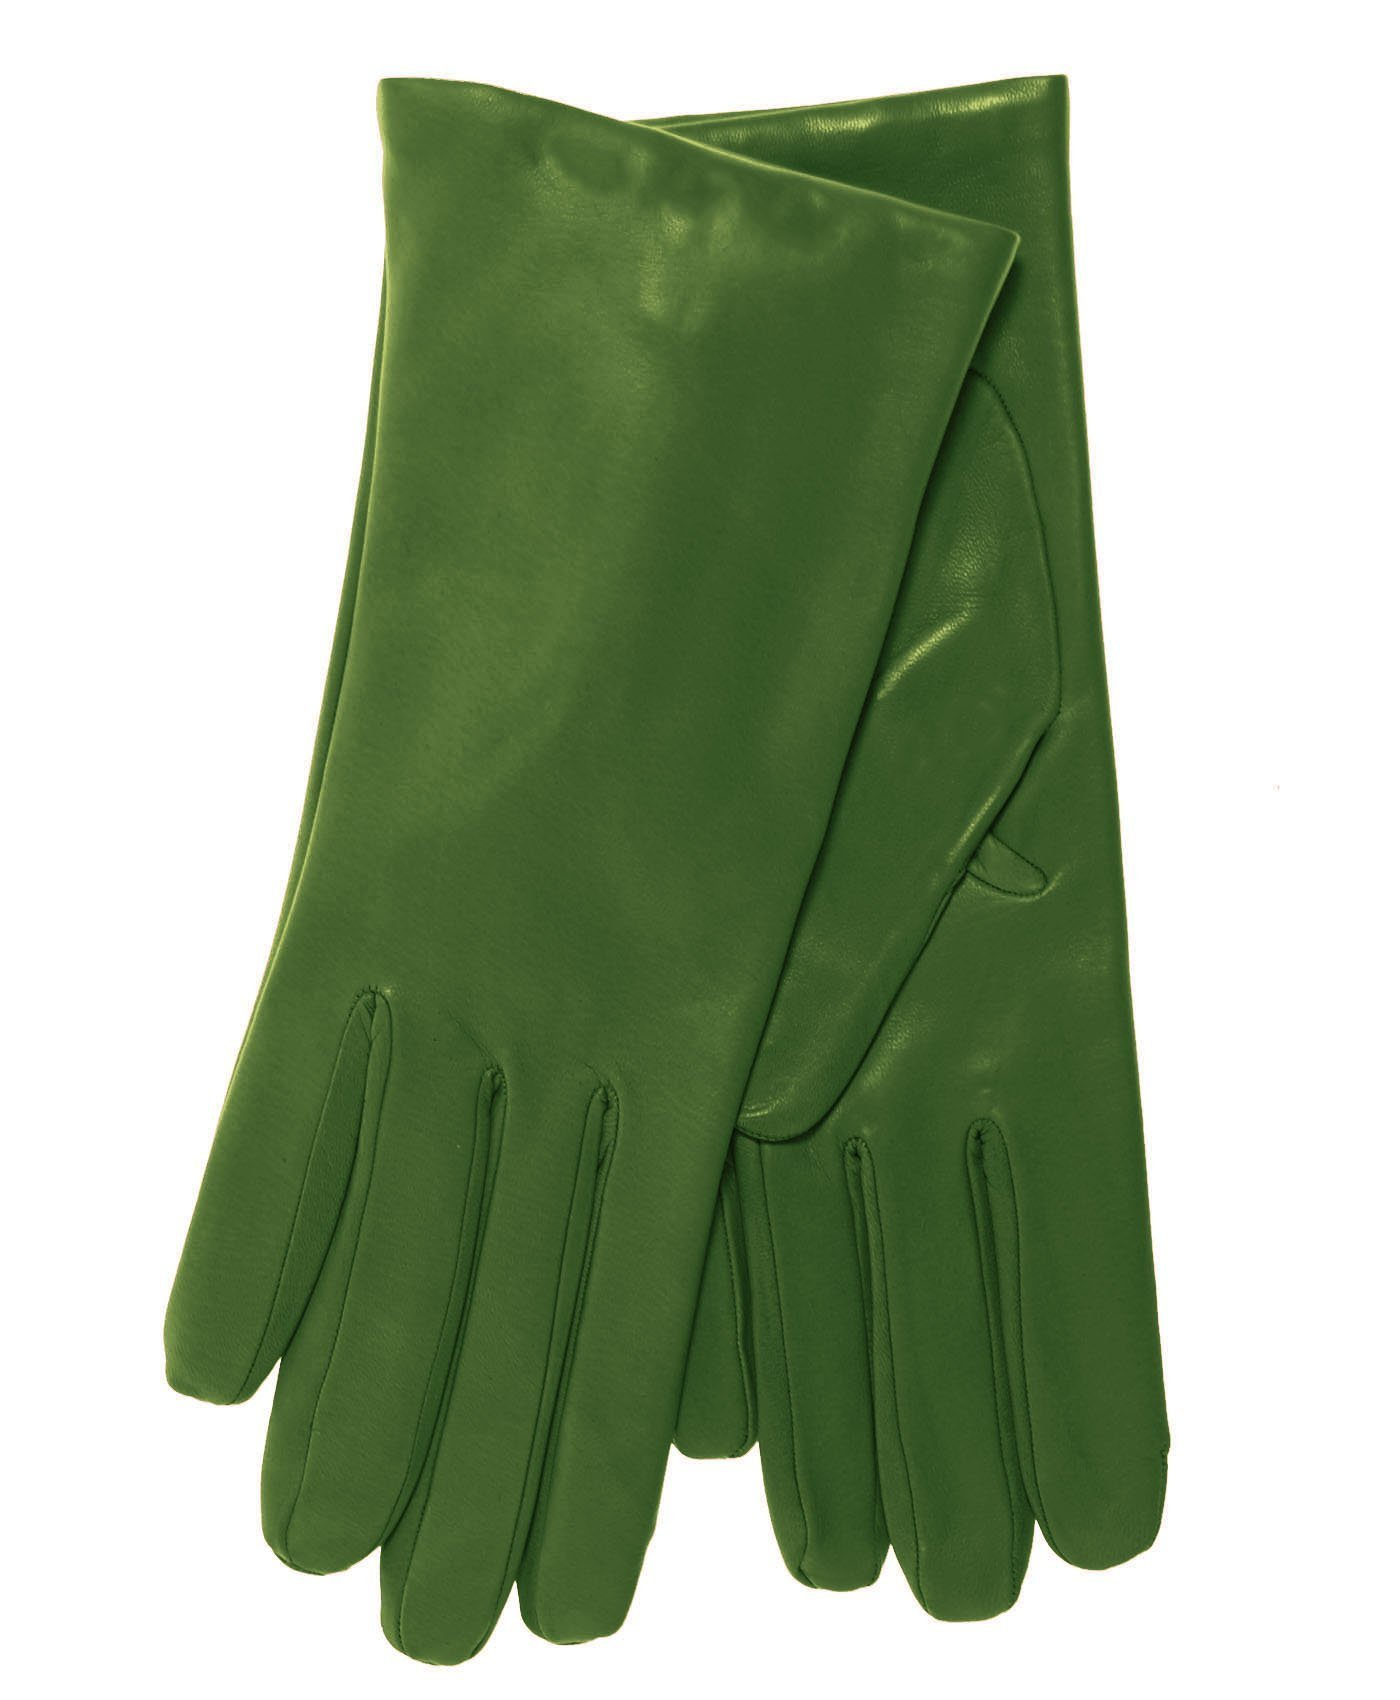 Fratelli Orsini Everyday Women's Italian Cashmere Lined Leather Gloves Size 8 1/2 Color Green